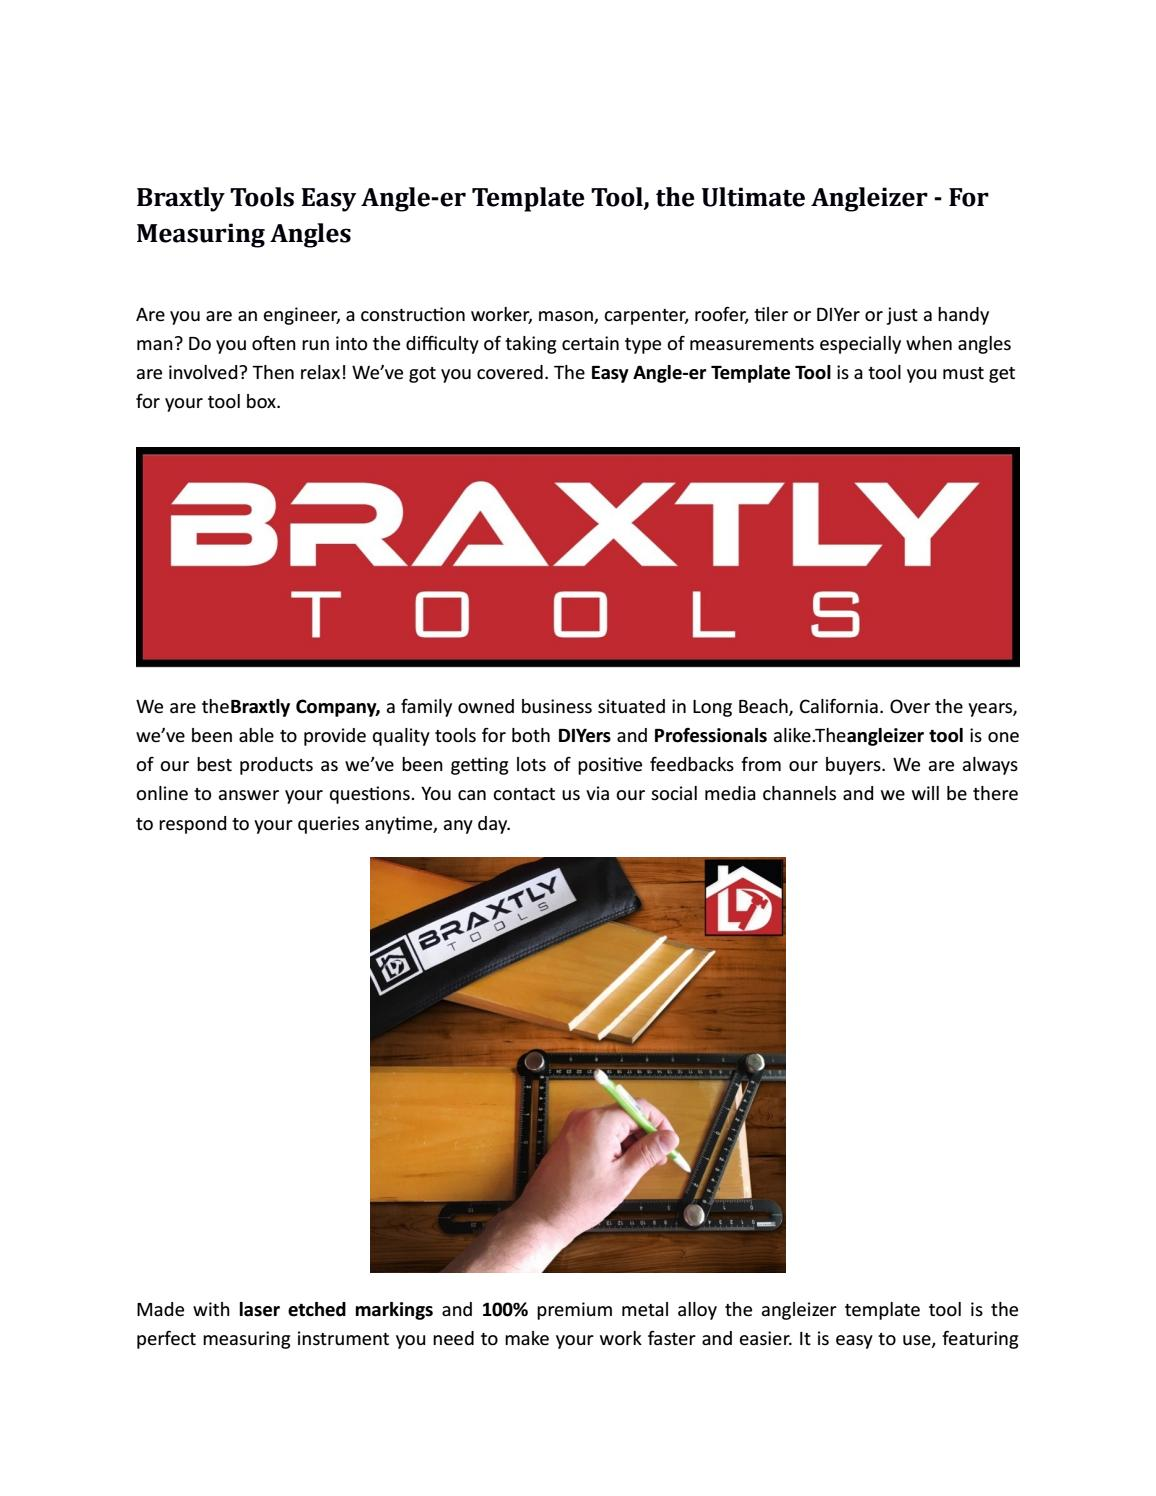 Braxtly Tools Easy Angle Er Template Tool The Ultimate Angleizer For Measuring Angles